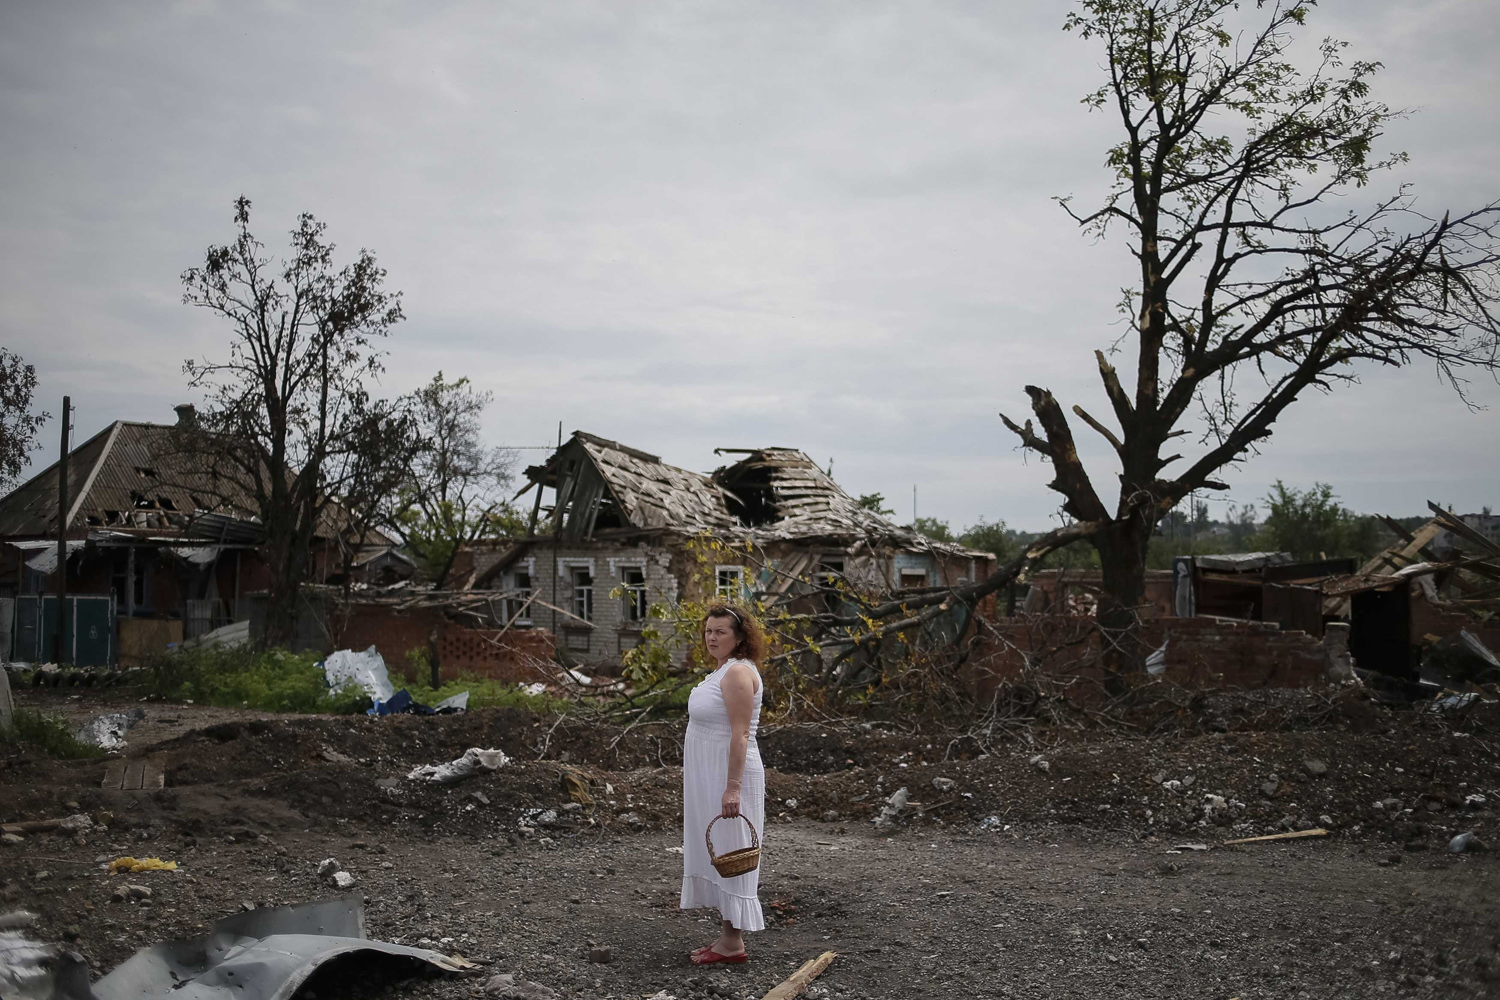 Jul. 9, 2014. A local resident stands outside buildings damaged by a recent shelling in the eastern Ukrainian village of Semenovka.